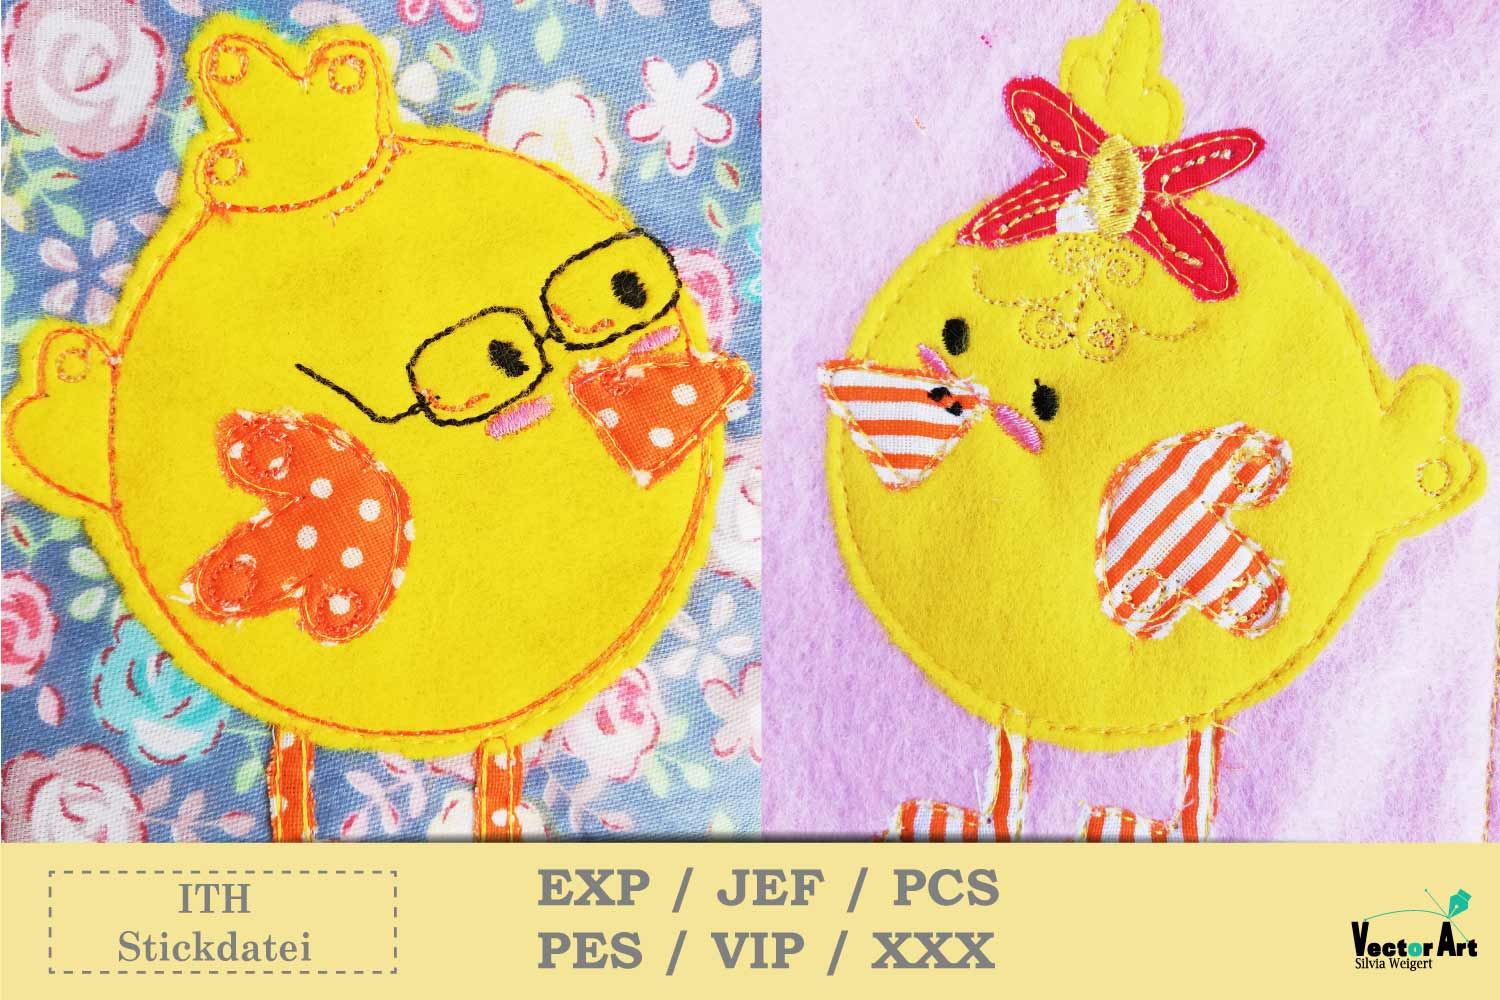 ITH Easter Bundle - Machine Embroidery Files - 10 Projects example image 12